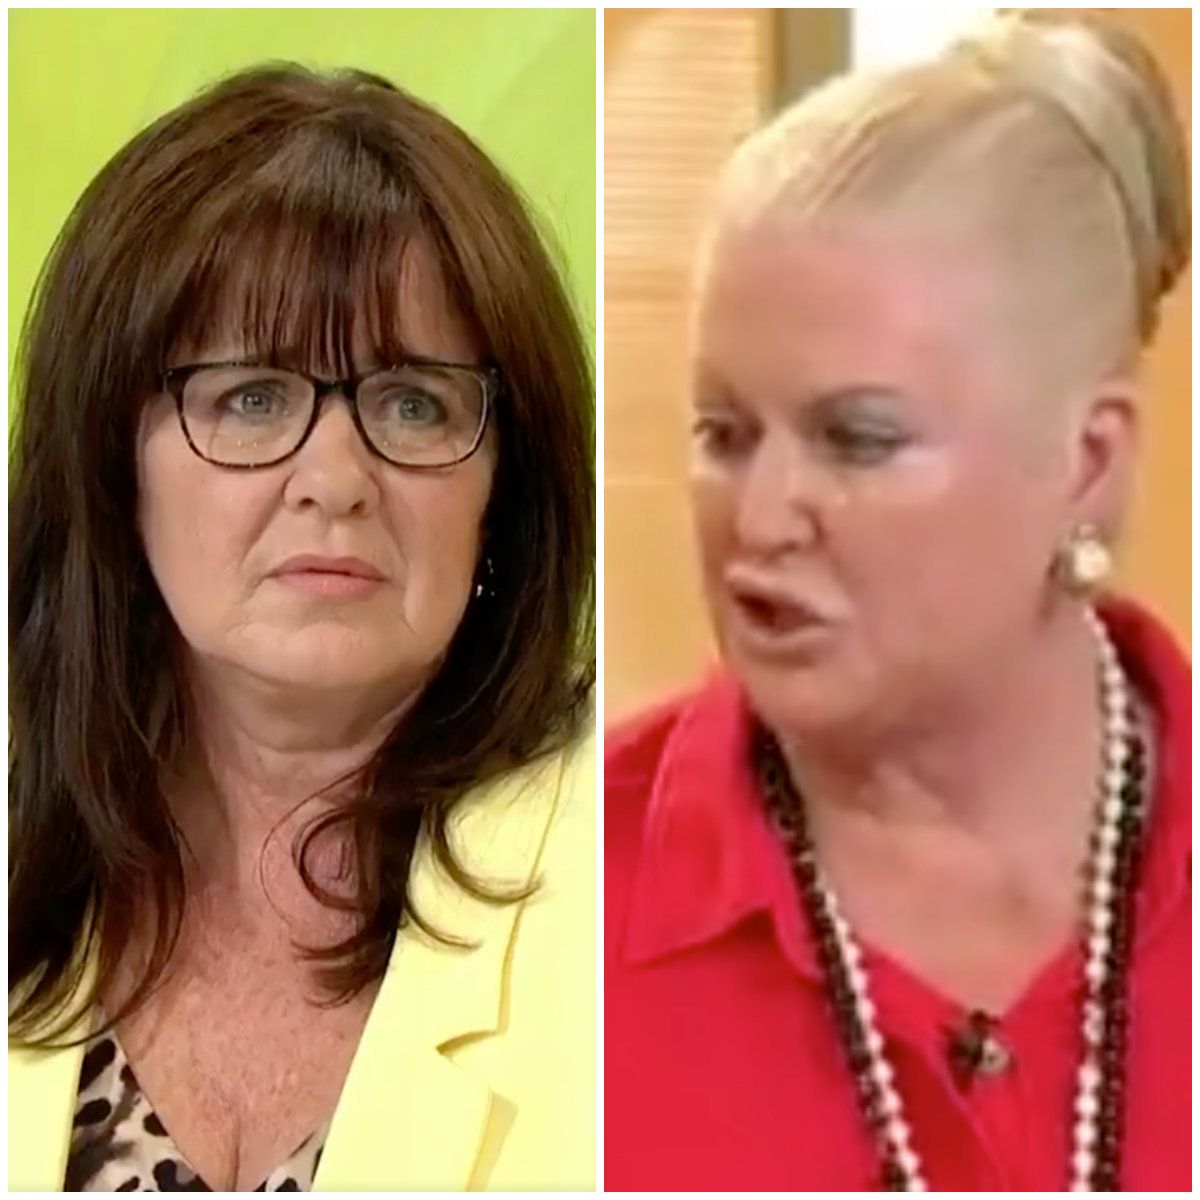 'Loose Women' Viewers Accuse Show Of Trying To Score Ratings With 'Uncomfortable' Kim Woodburn